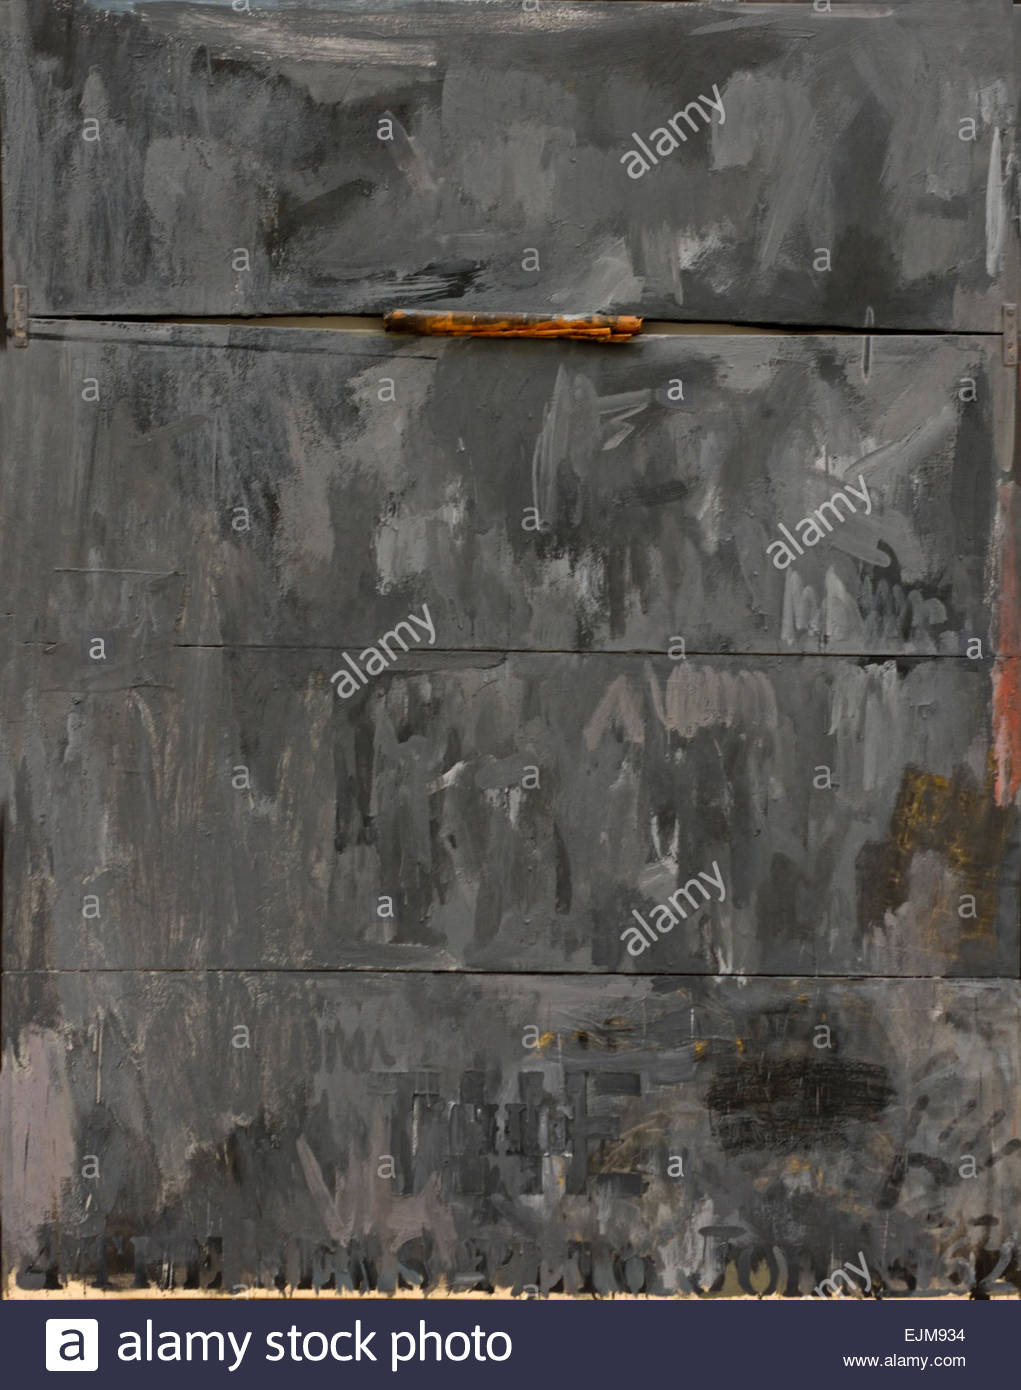 4 The News 1962 Jasper Johns 1930 American United States of America USA - Stock Image